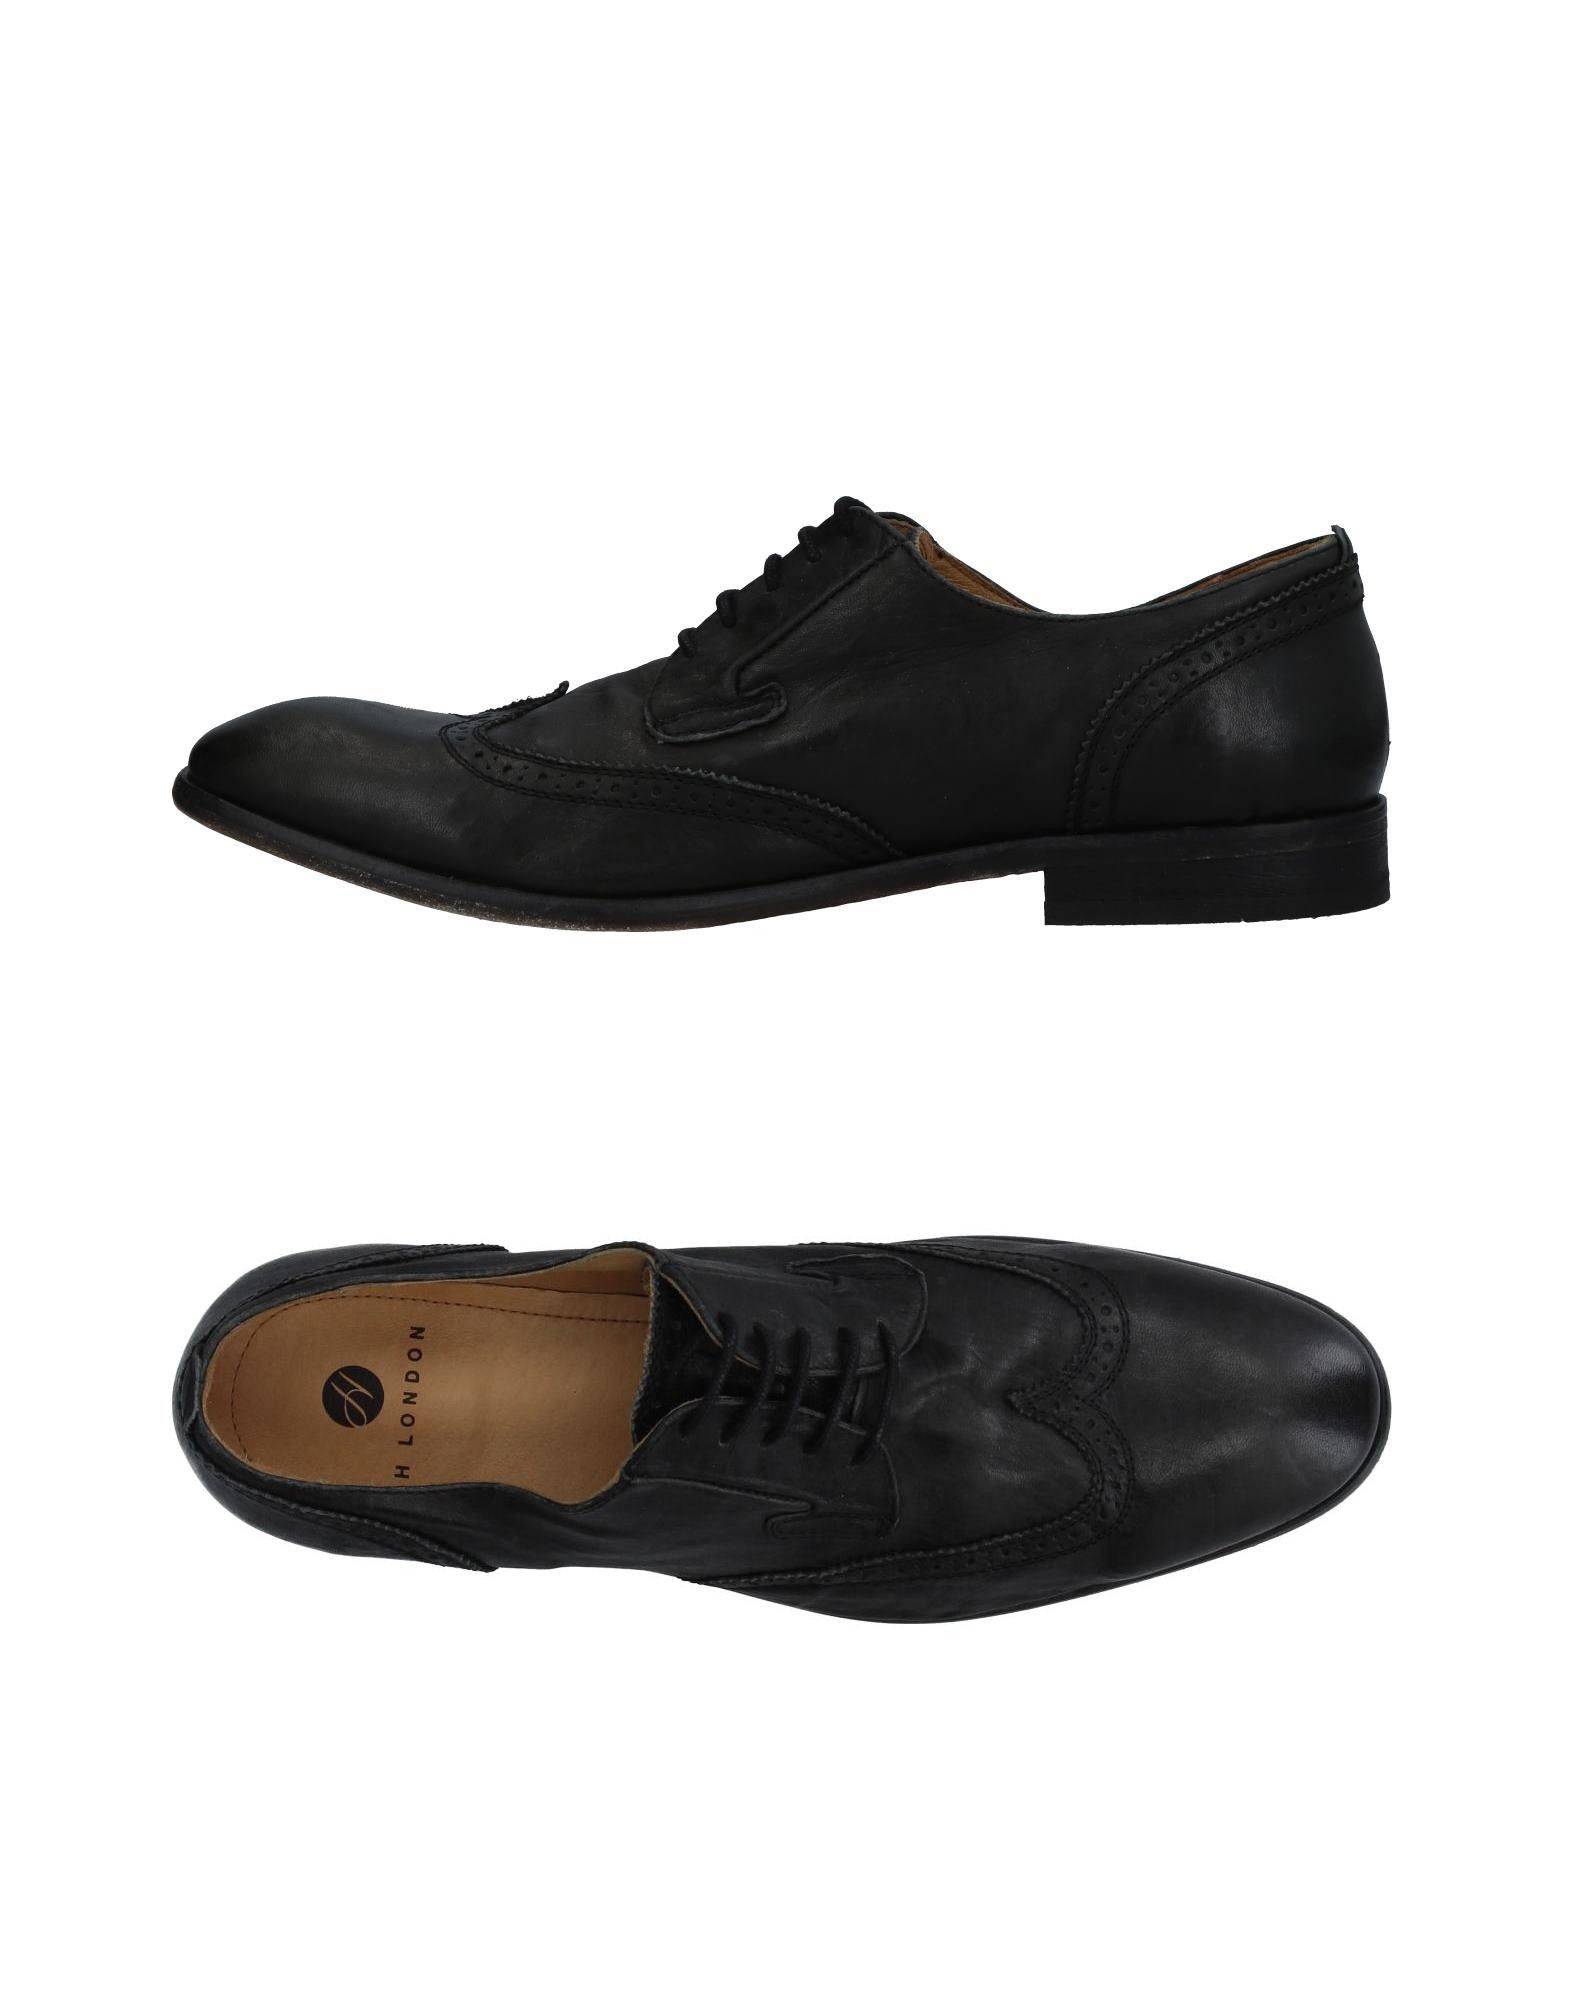 H BY HUDSON Lace-Up Shoes in Black